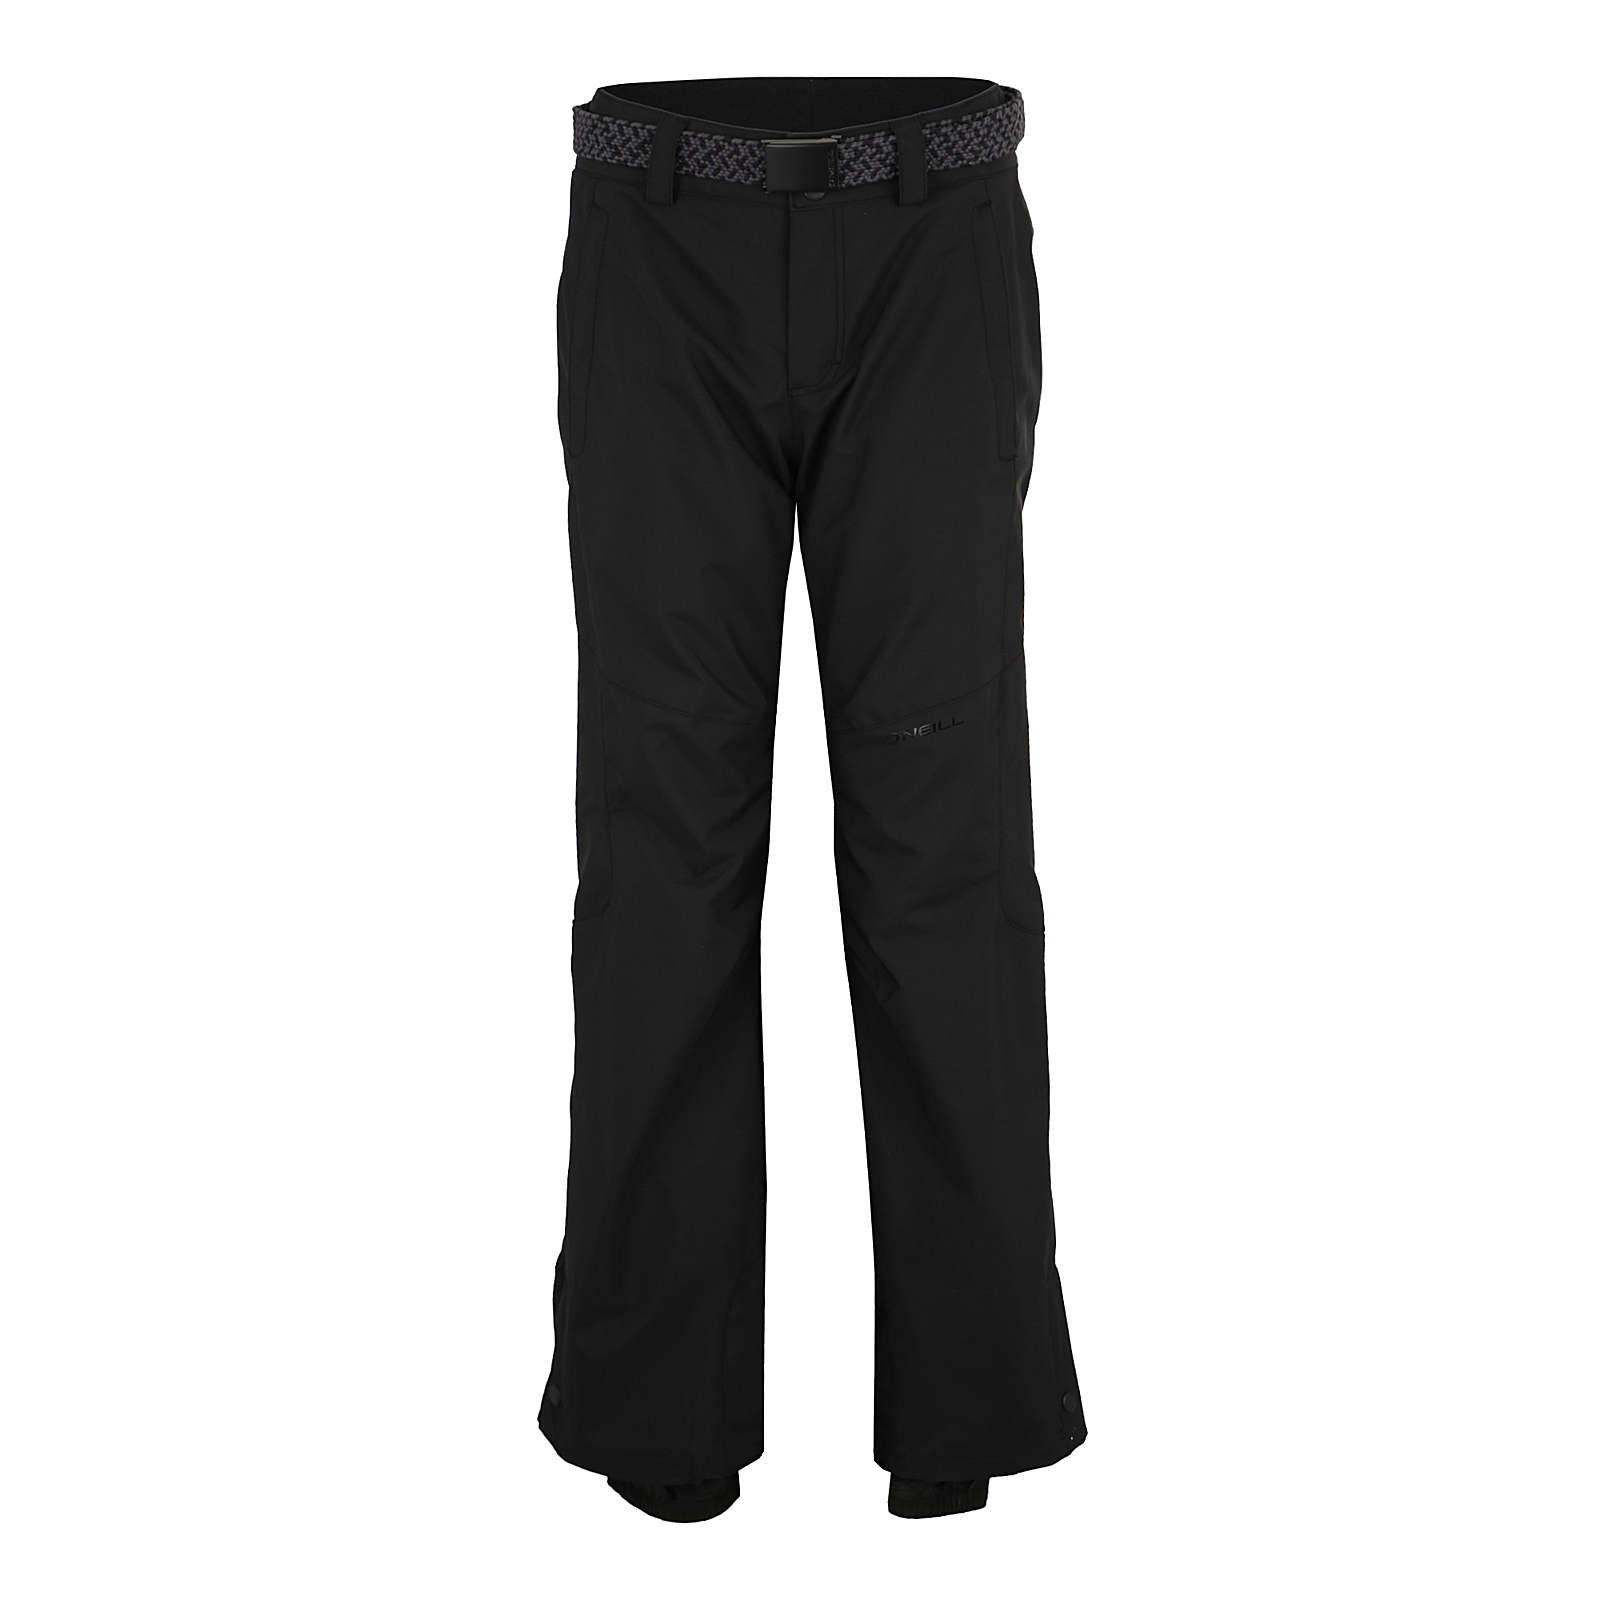 O´NEILL Outdoorhose STAR Outdoorhosen schwarz Damen Gr. 40